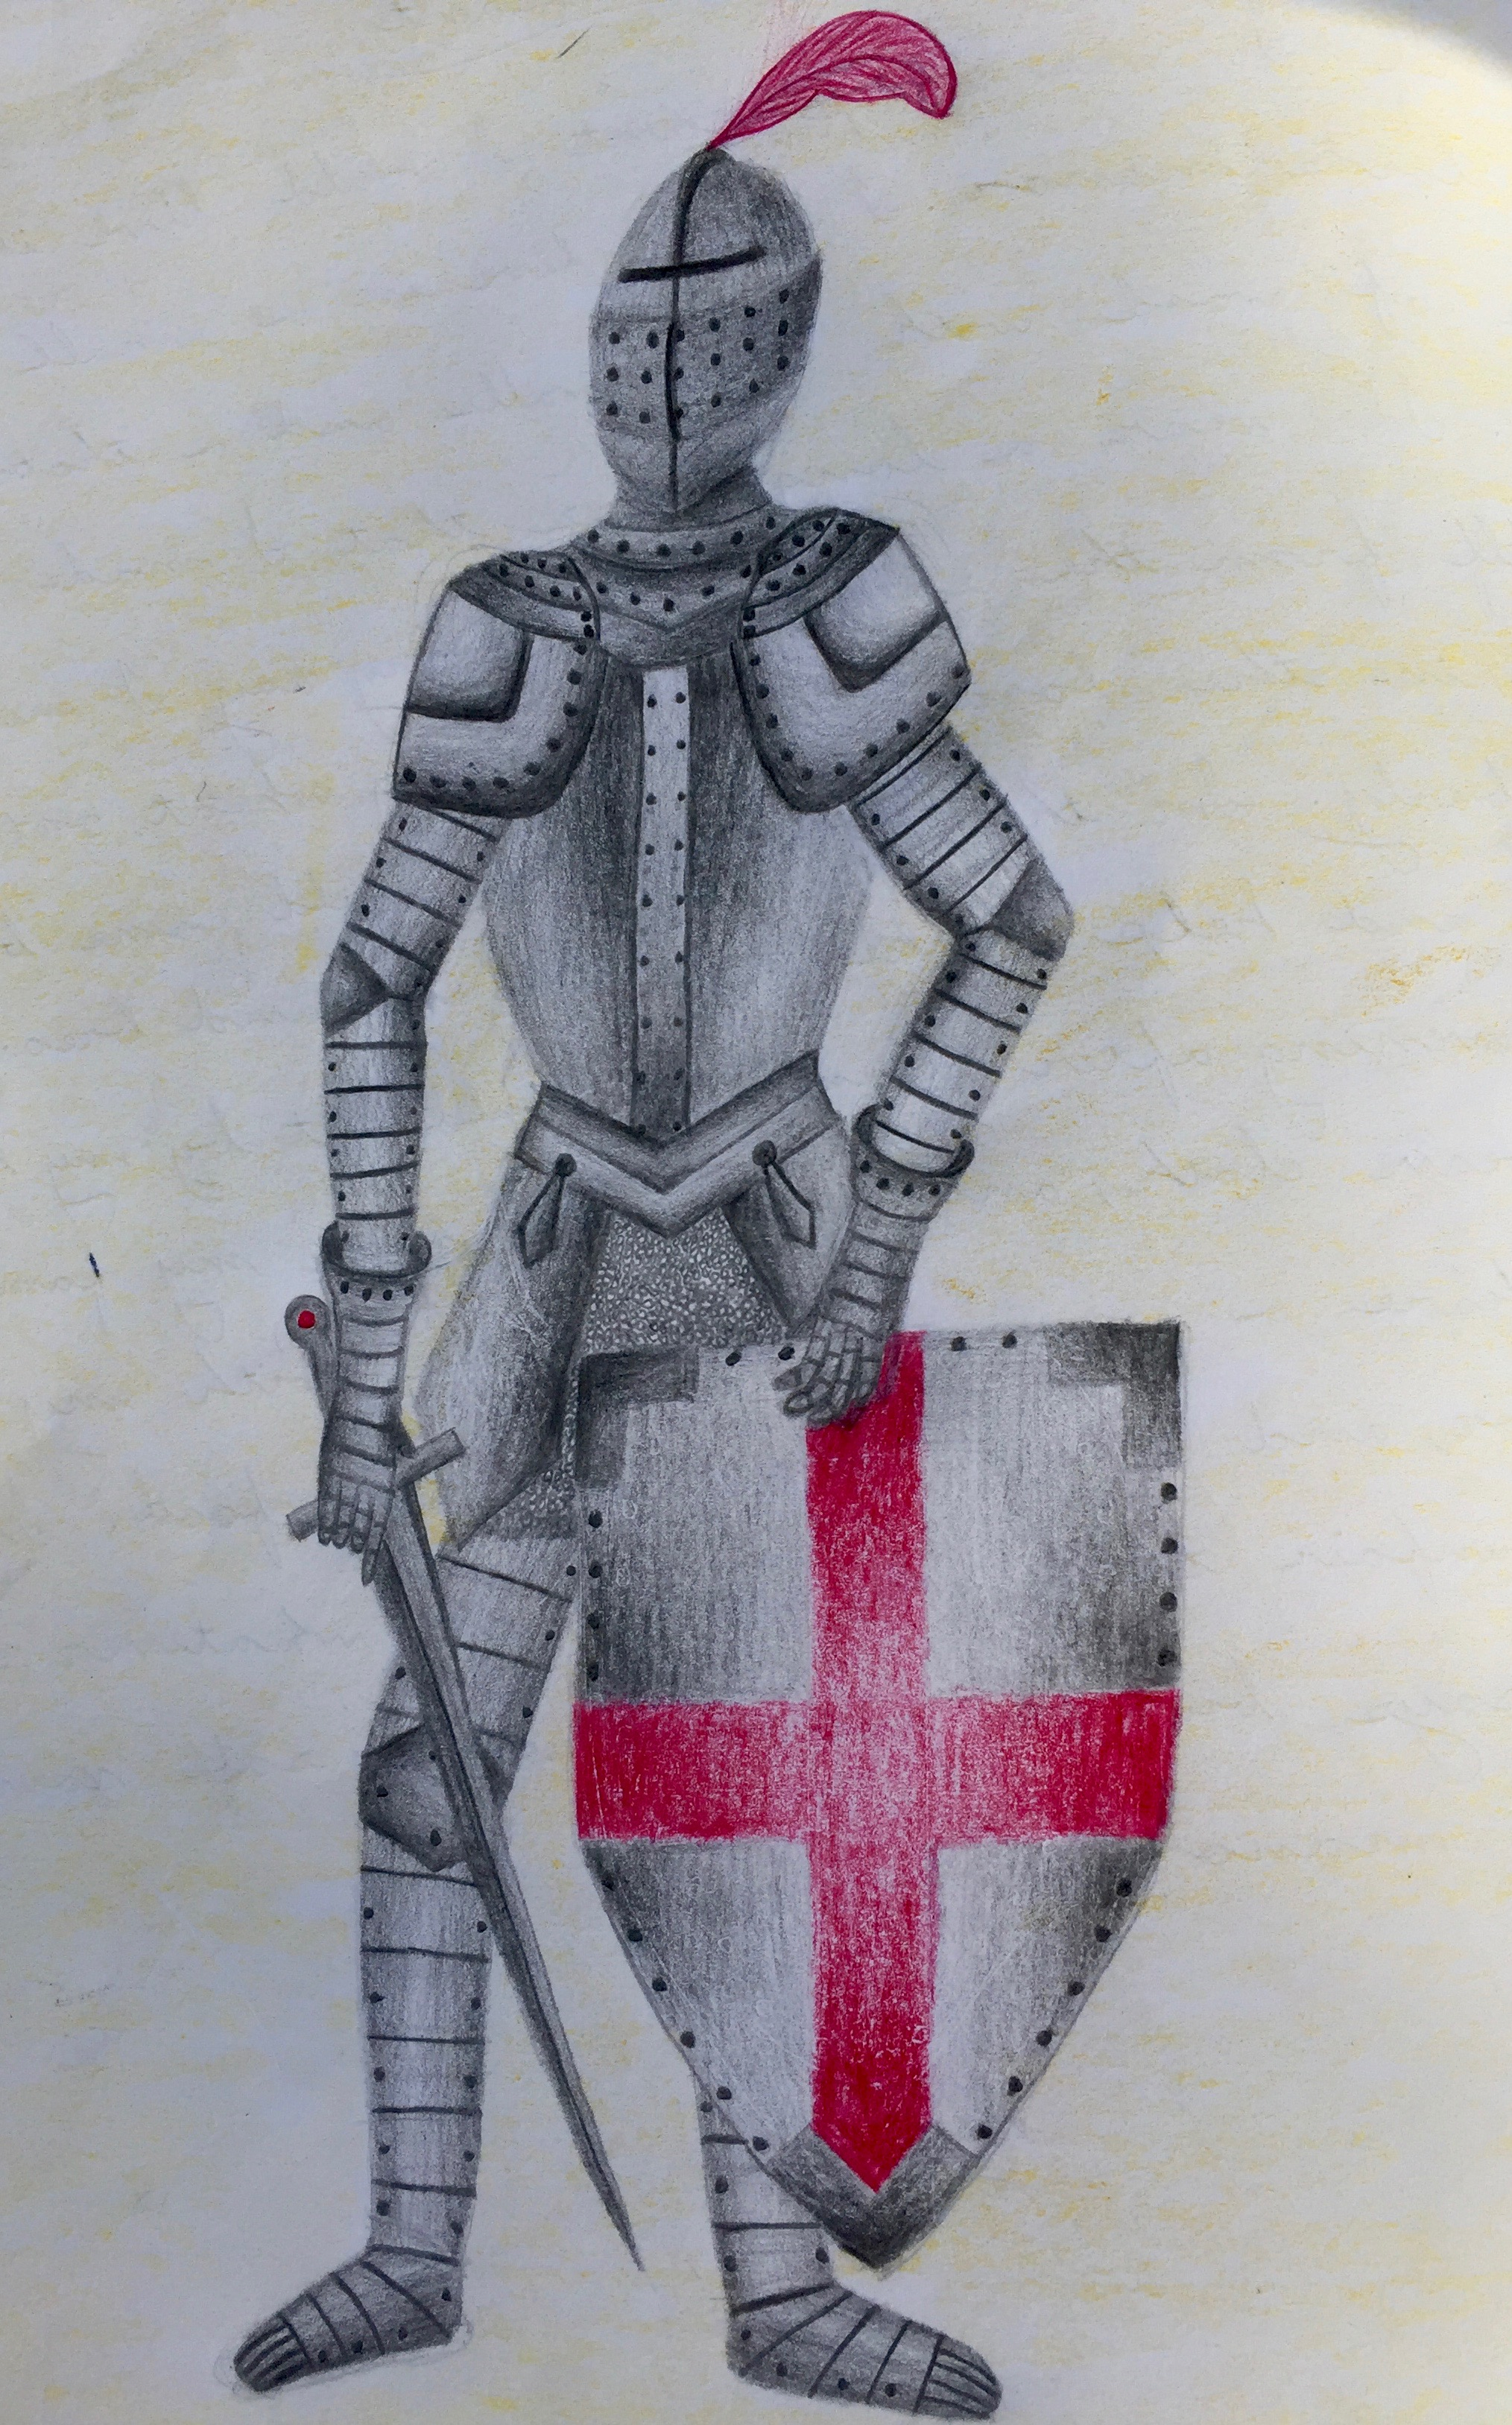 Proportional drawing of a knight from a block on Medieval History